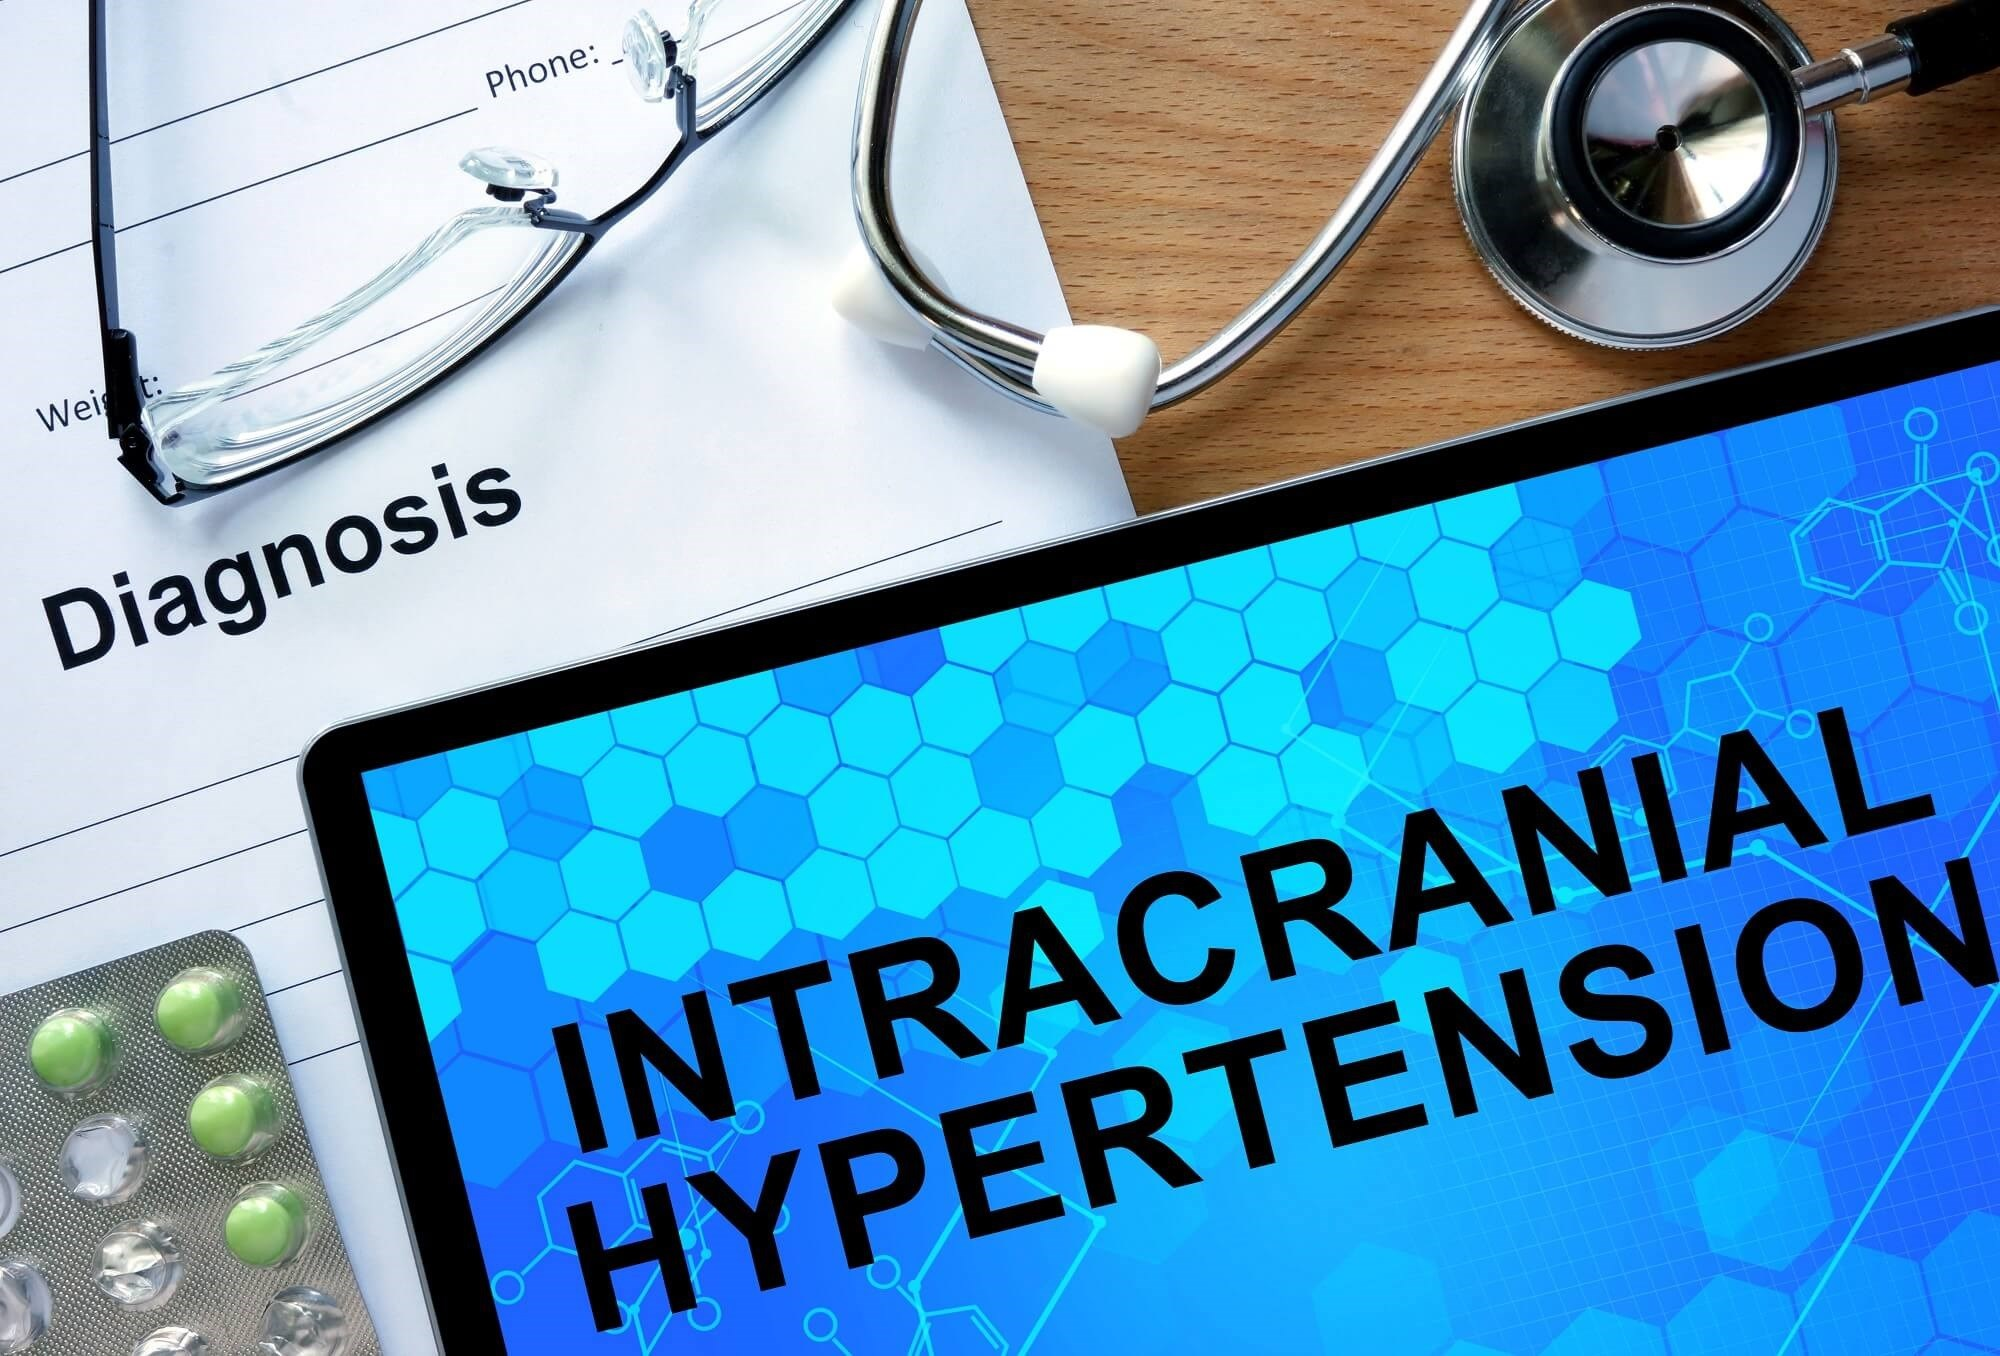 Idiopathic intracranial hypertension is characterized by an elevation of intracranial pressure with no identifiable cause.